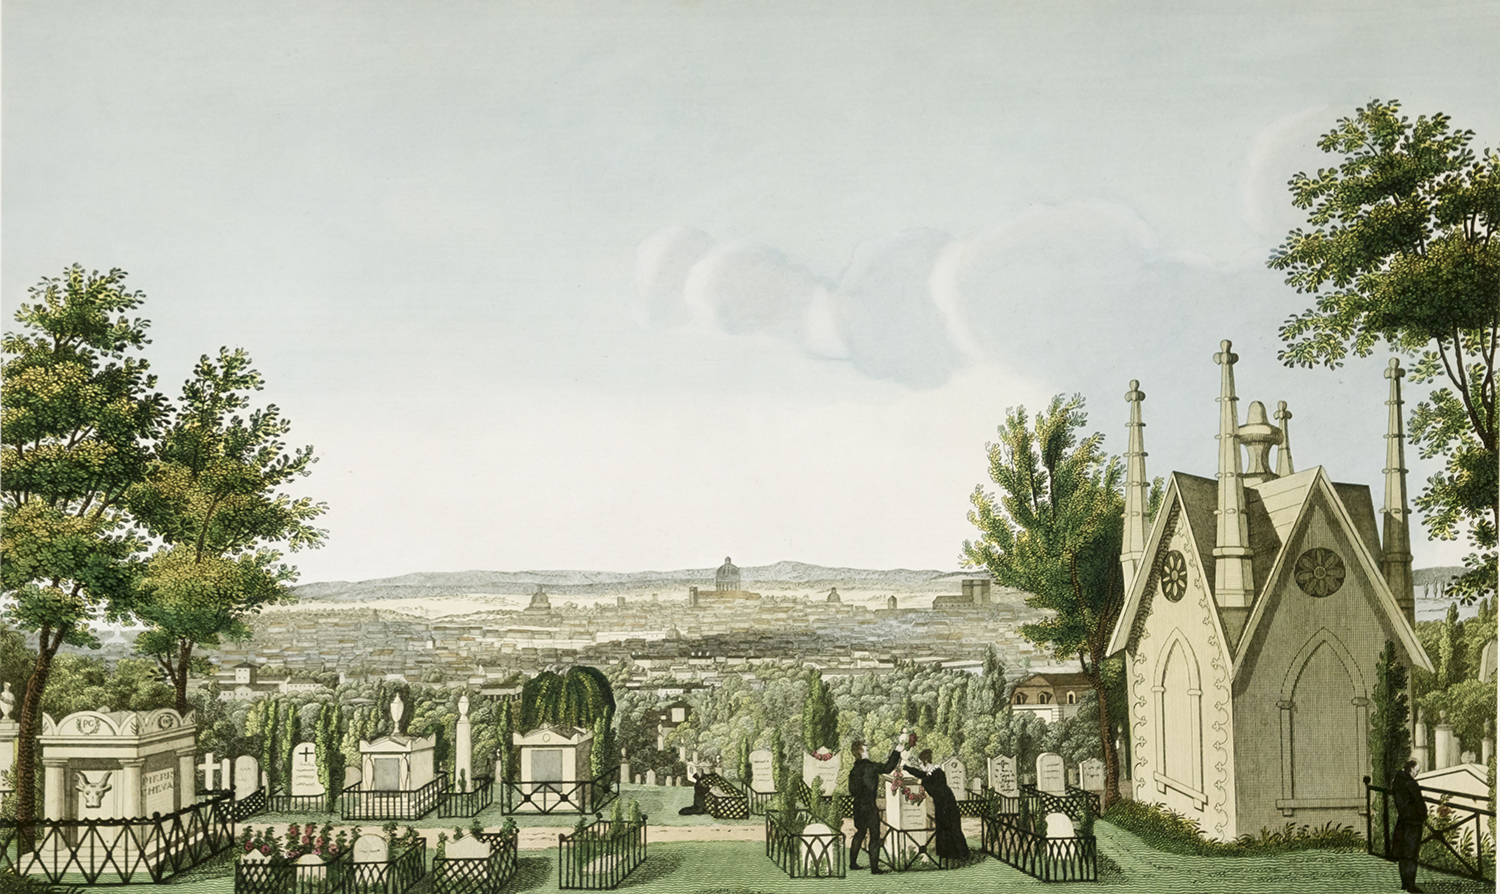 view of Paris from Père-Lachaise, c. 1820